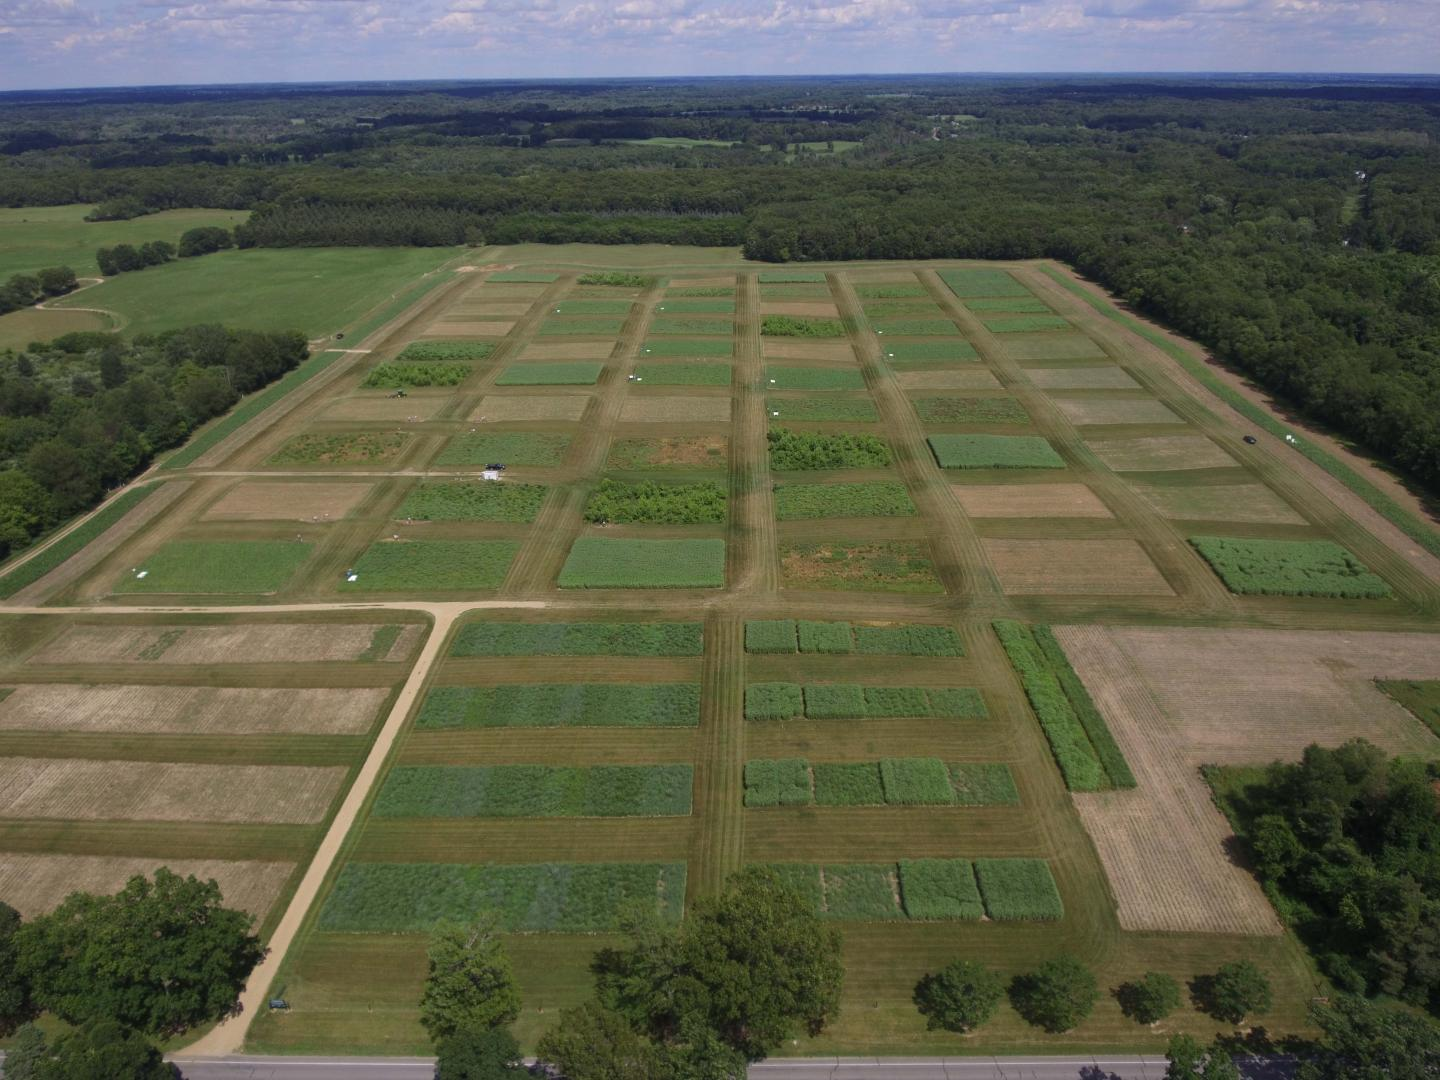 Biofuels cropping experiment in Michigan